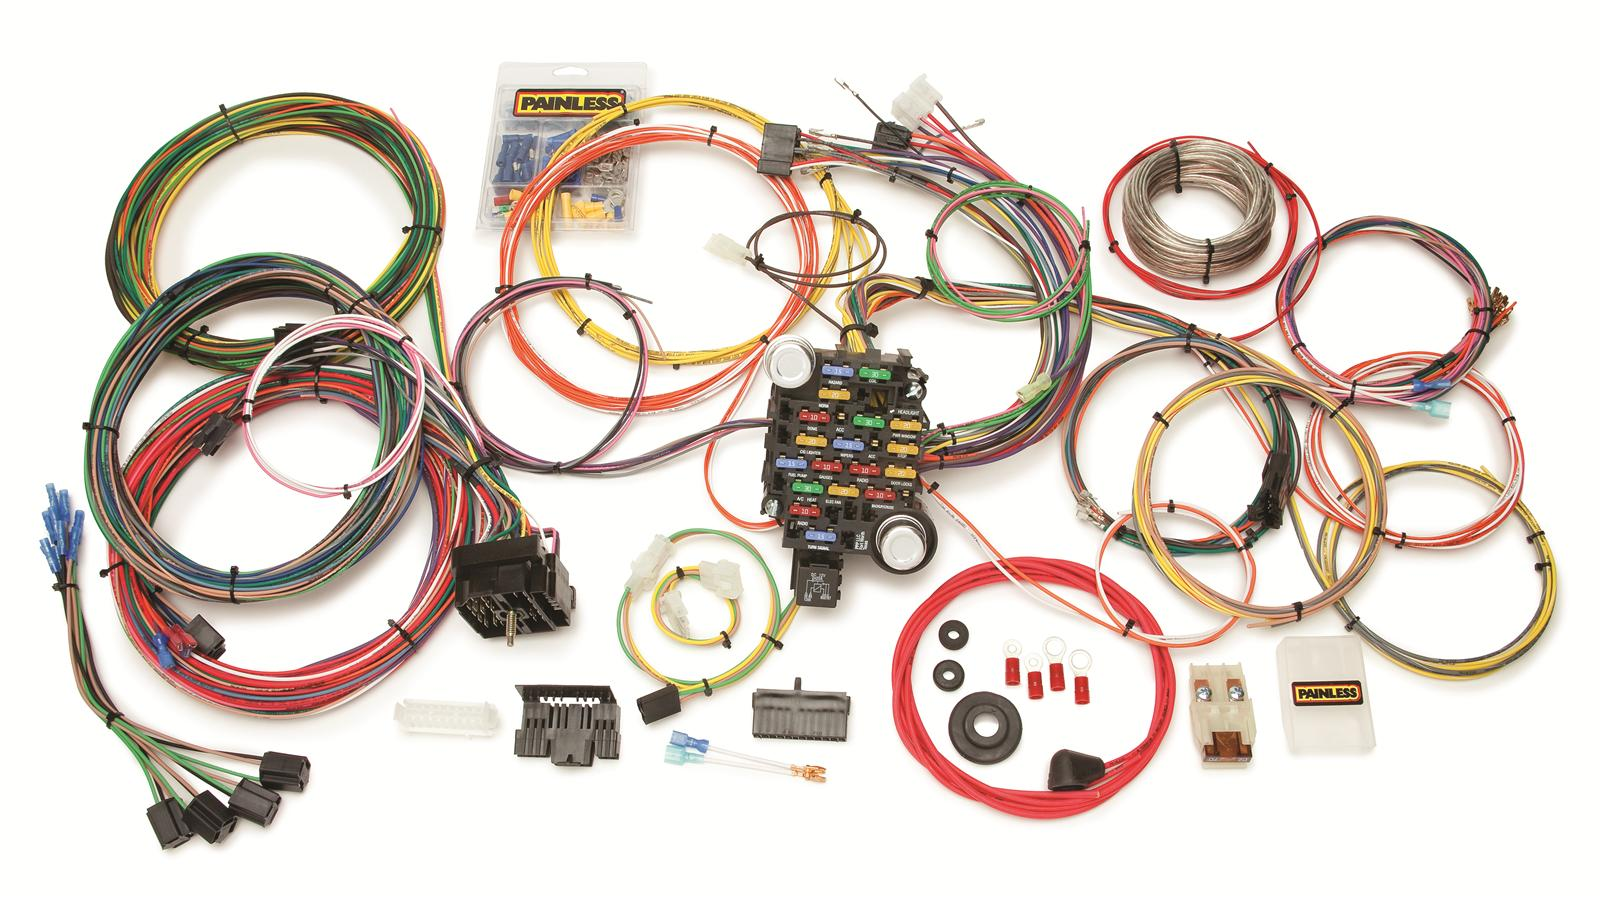 prf 10205_xl painless performance gmc chevy truck harnesses 10205 free 1975 chevy truck wiring harness at honlapkeszites.co